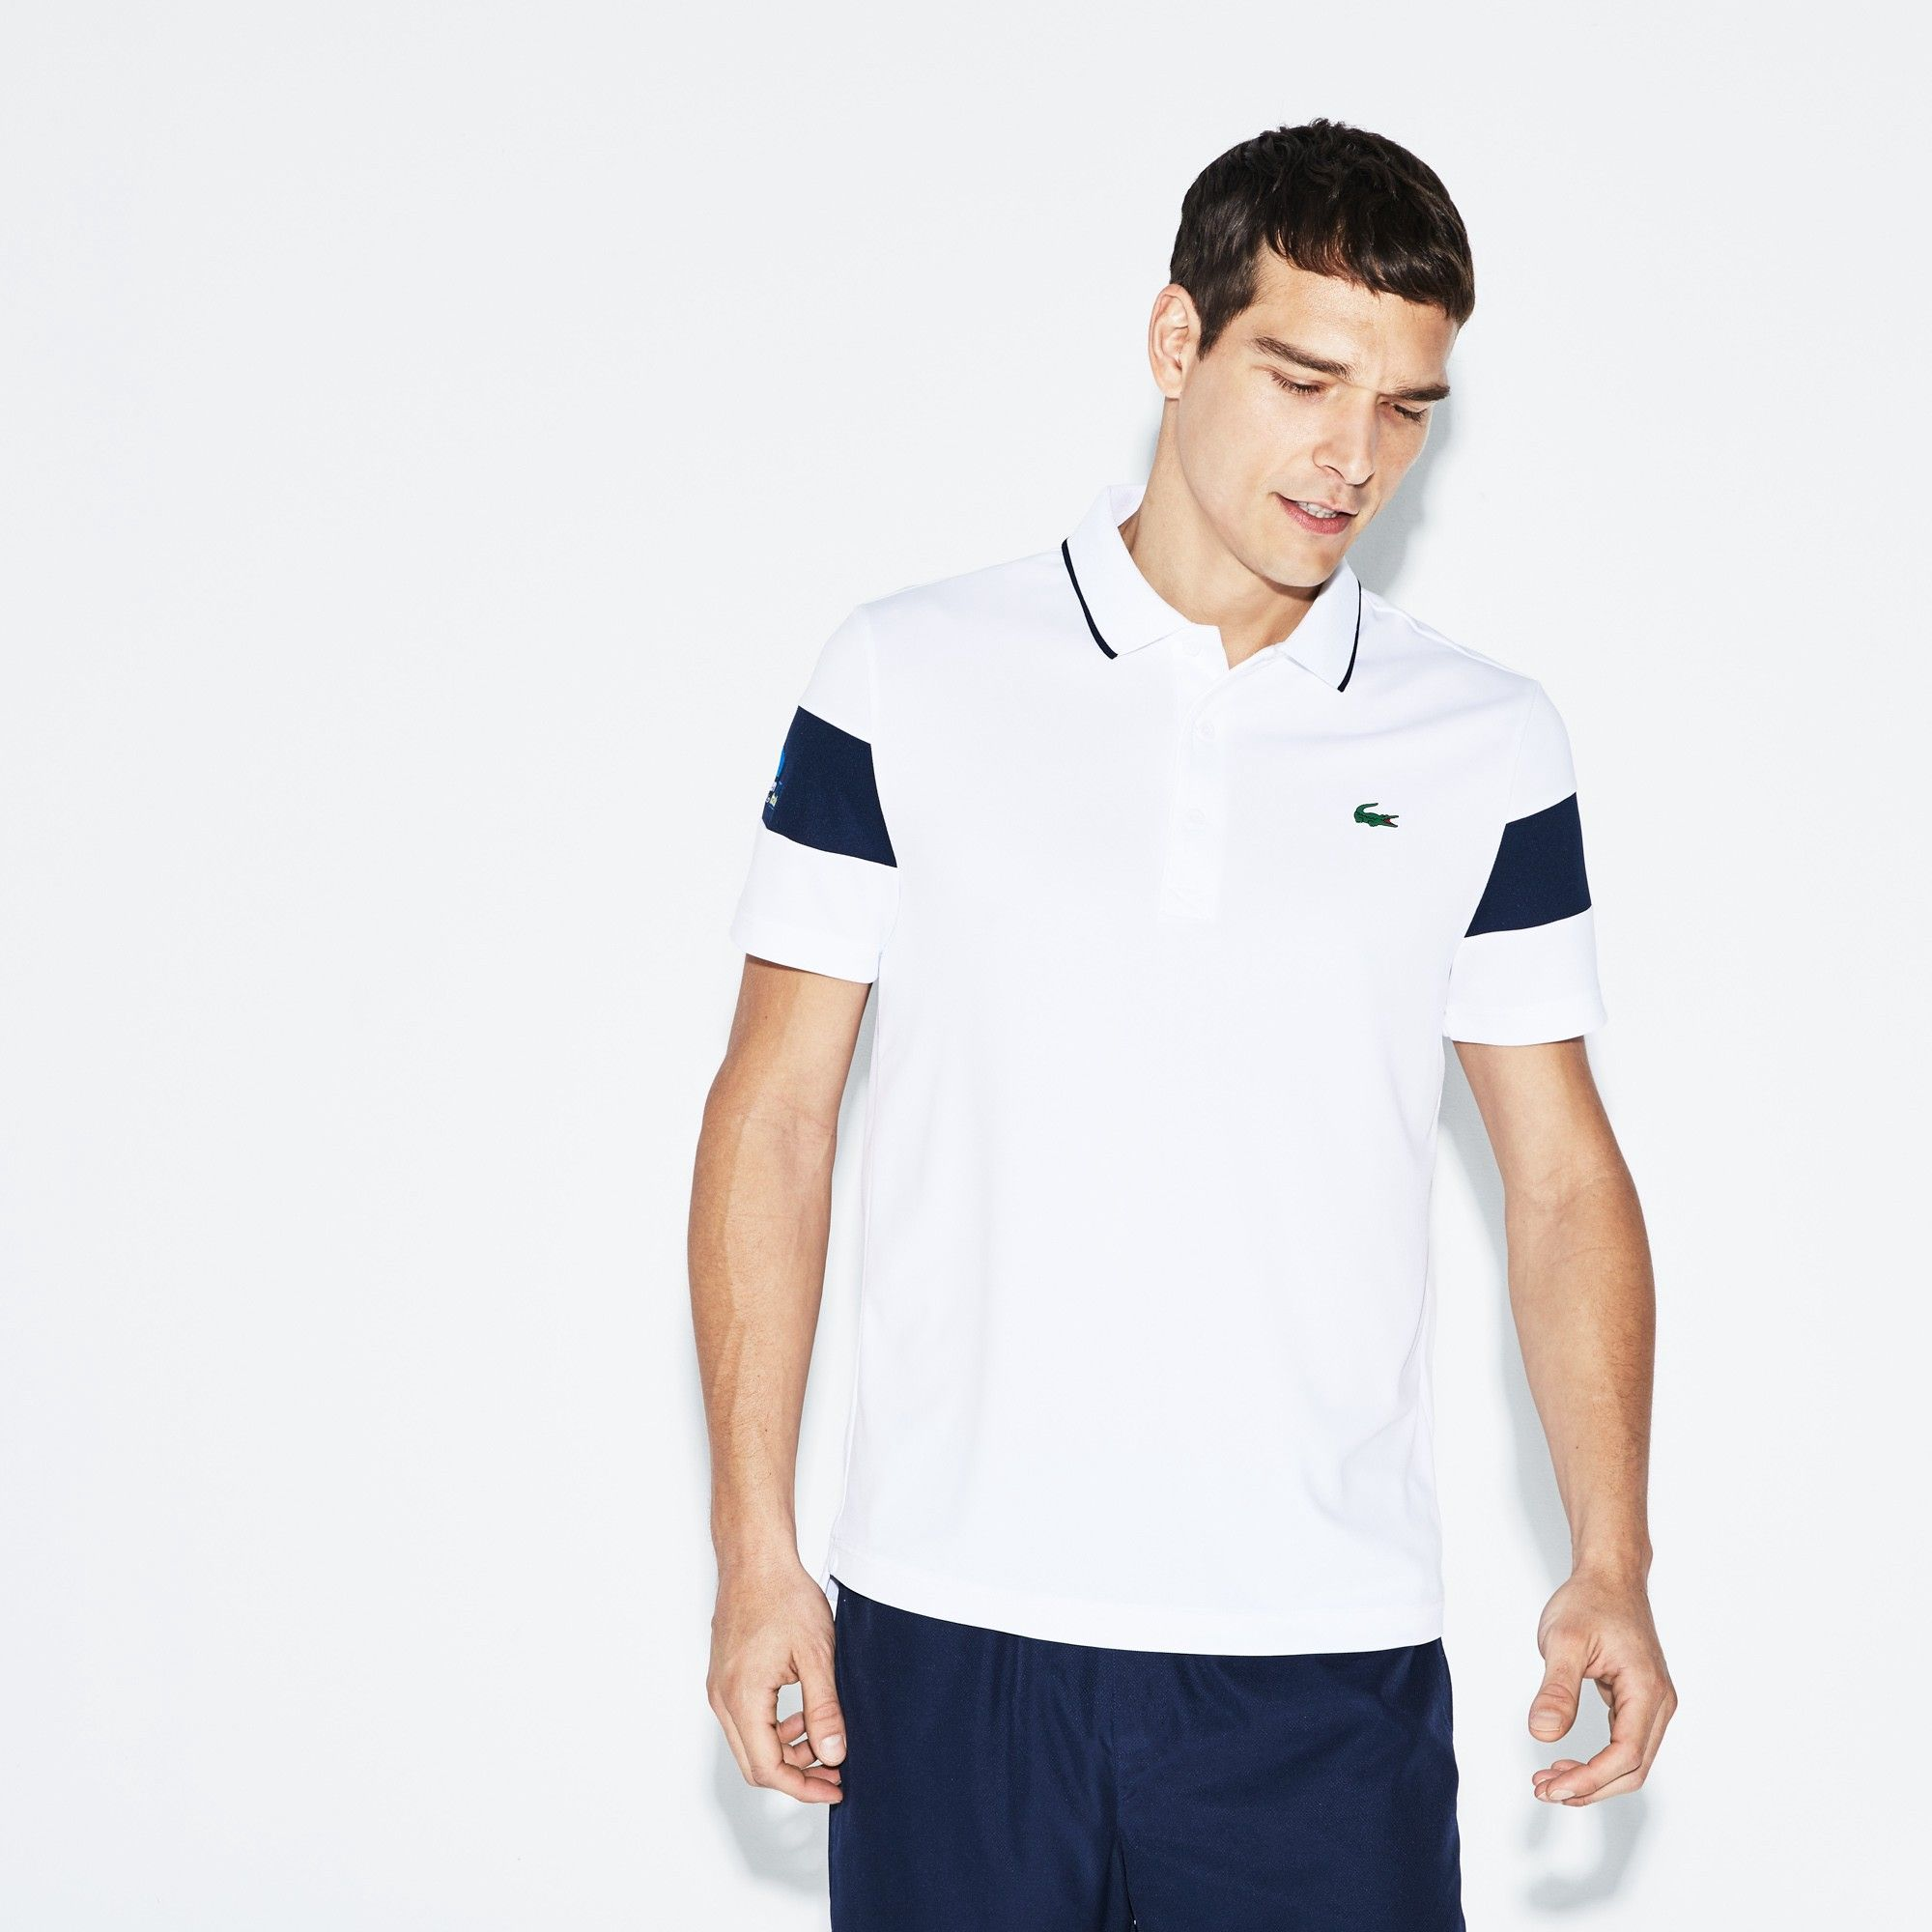 Lacoste Men s Sport Miami Open Technical Piqué Tennis Polo - White Navy  Blue 3XL fa4fb53d91